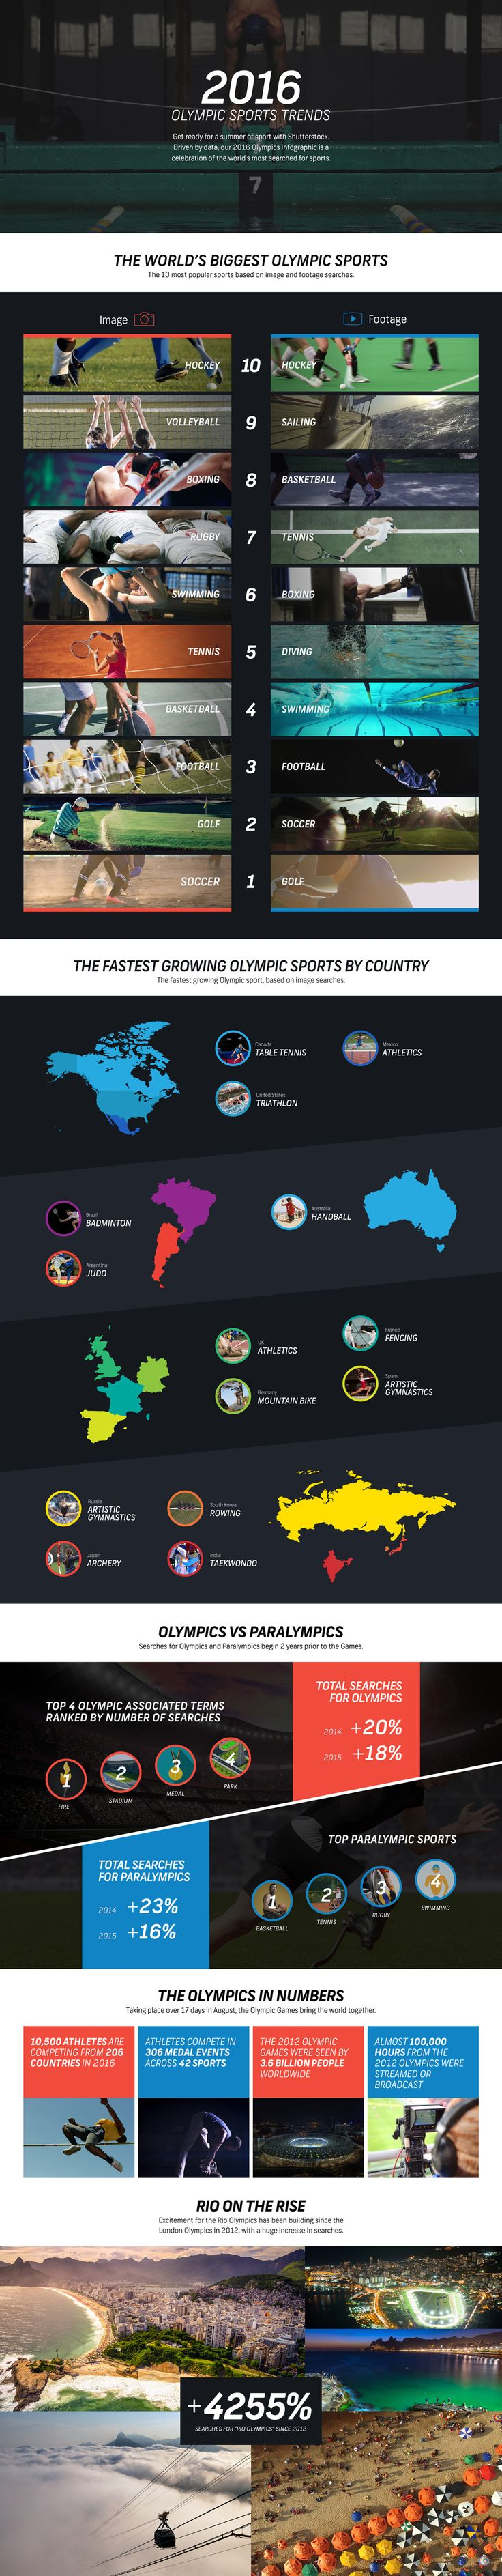 Shutterstock's 2016 Olympic Sports Trends #infographic #Sports